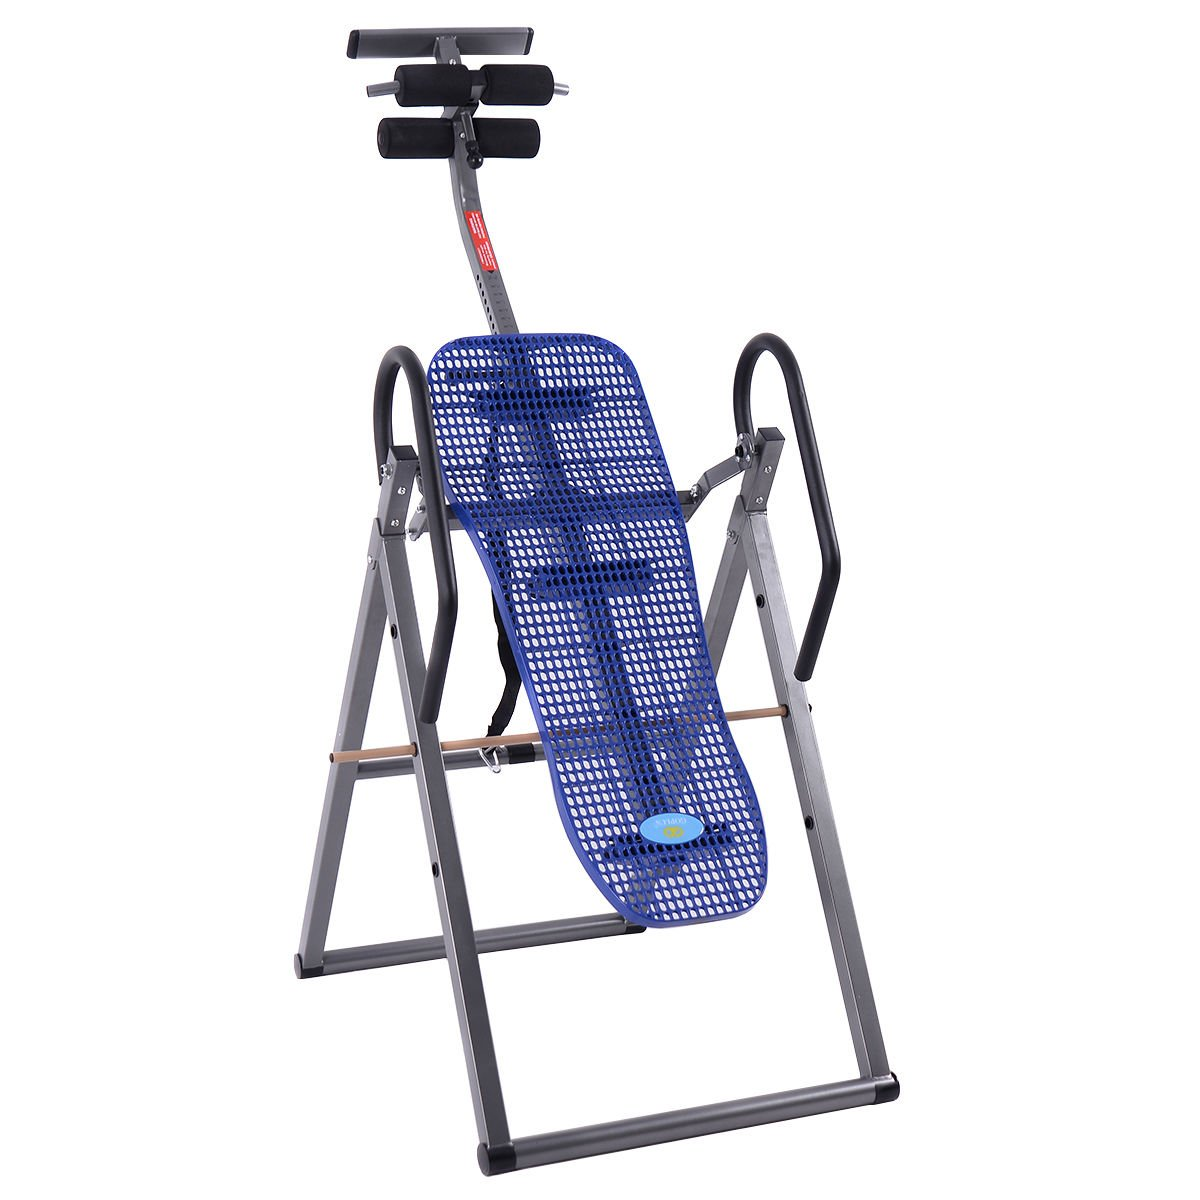 New Foldable ABS Inversion Table Gravity Therapy Back Pain Fitness Reflexology Blue by MTN Gearsmith (Image #6)